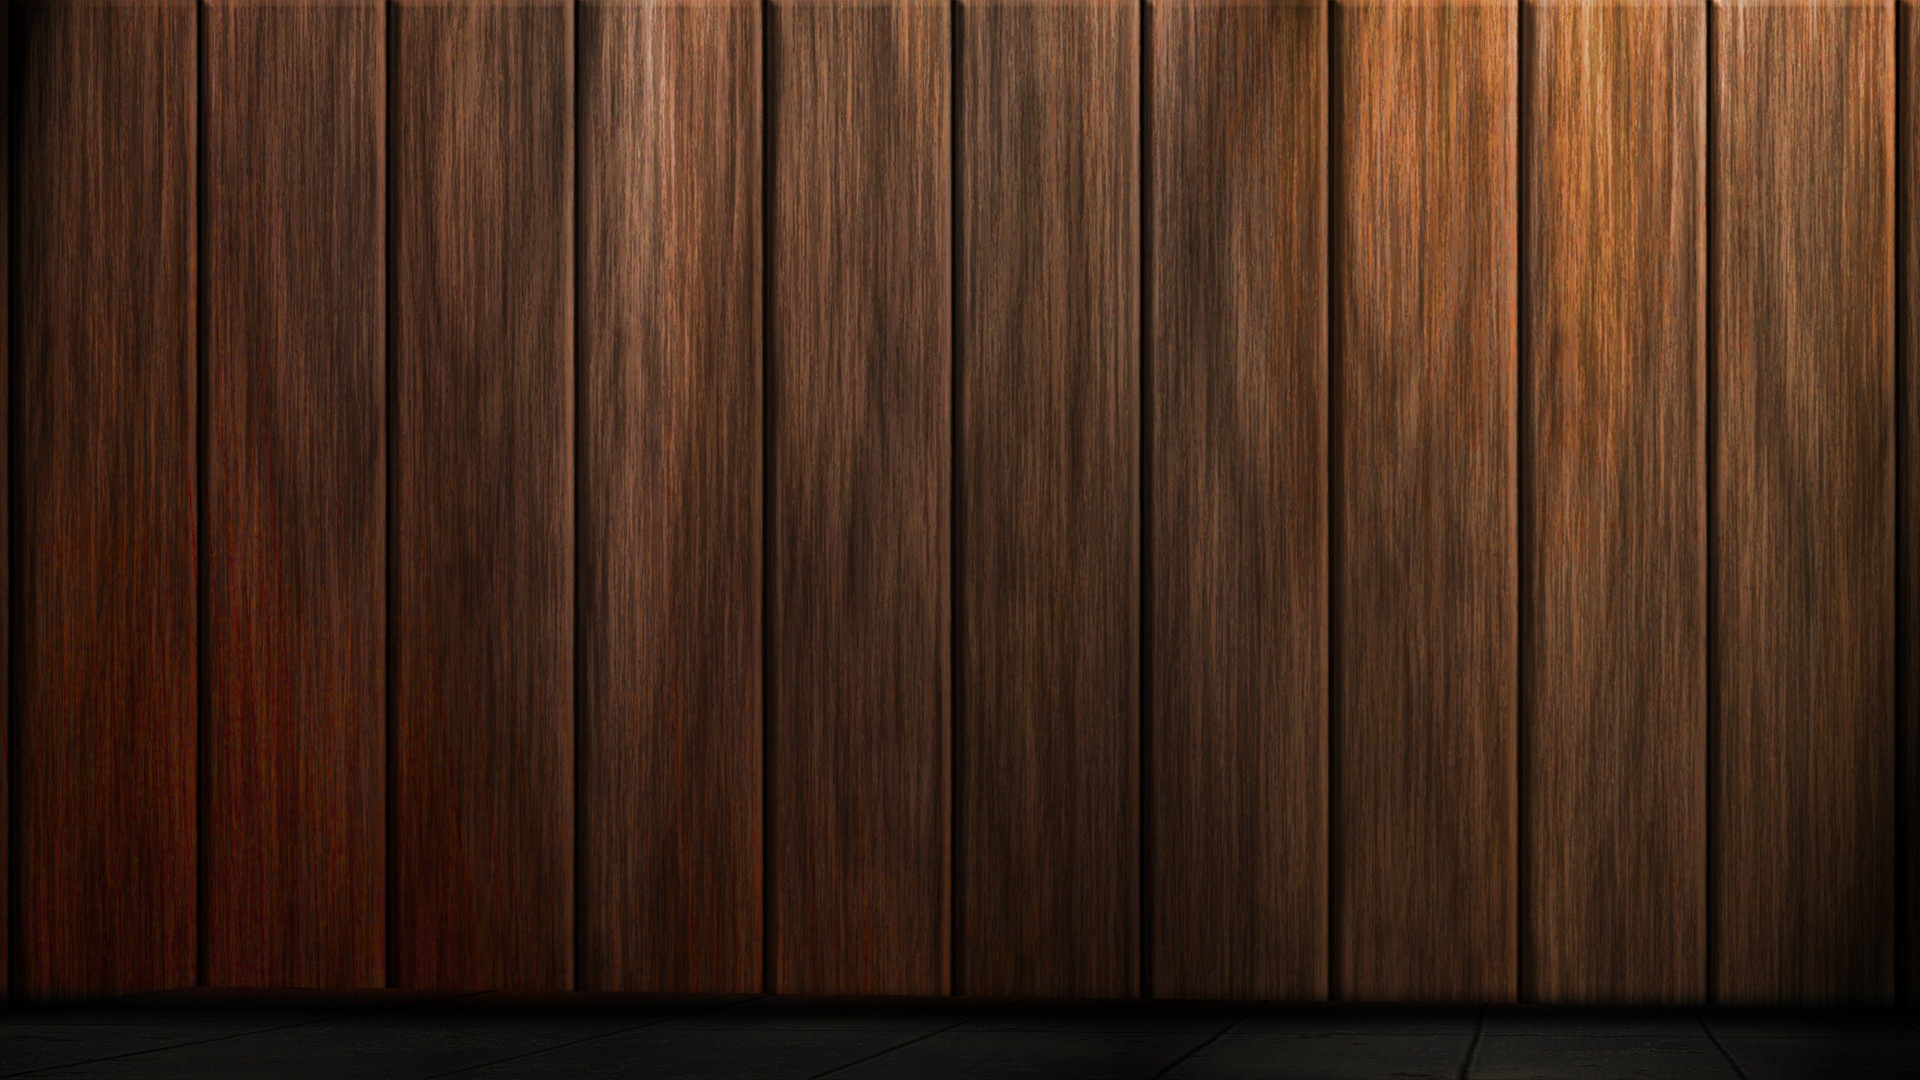 3d Wallpapers 1080p Free Download Wooden Wall Free Stock Photo Public Domain Pictures